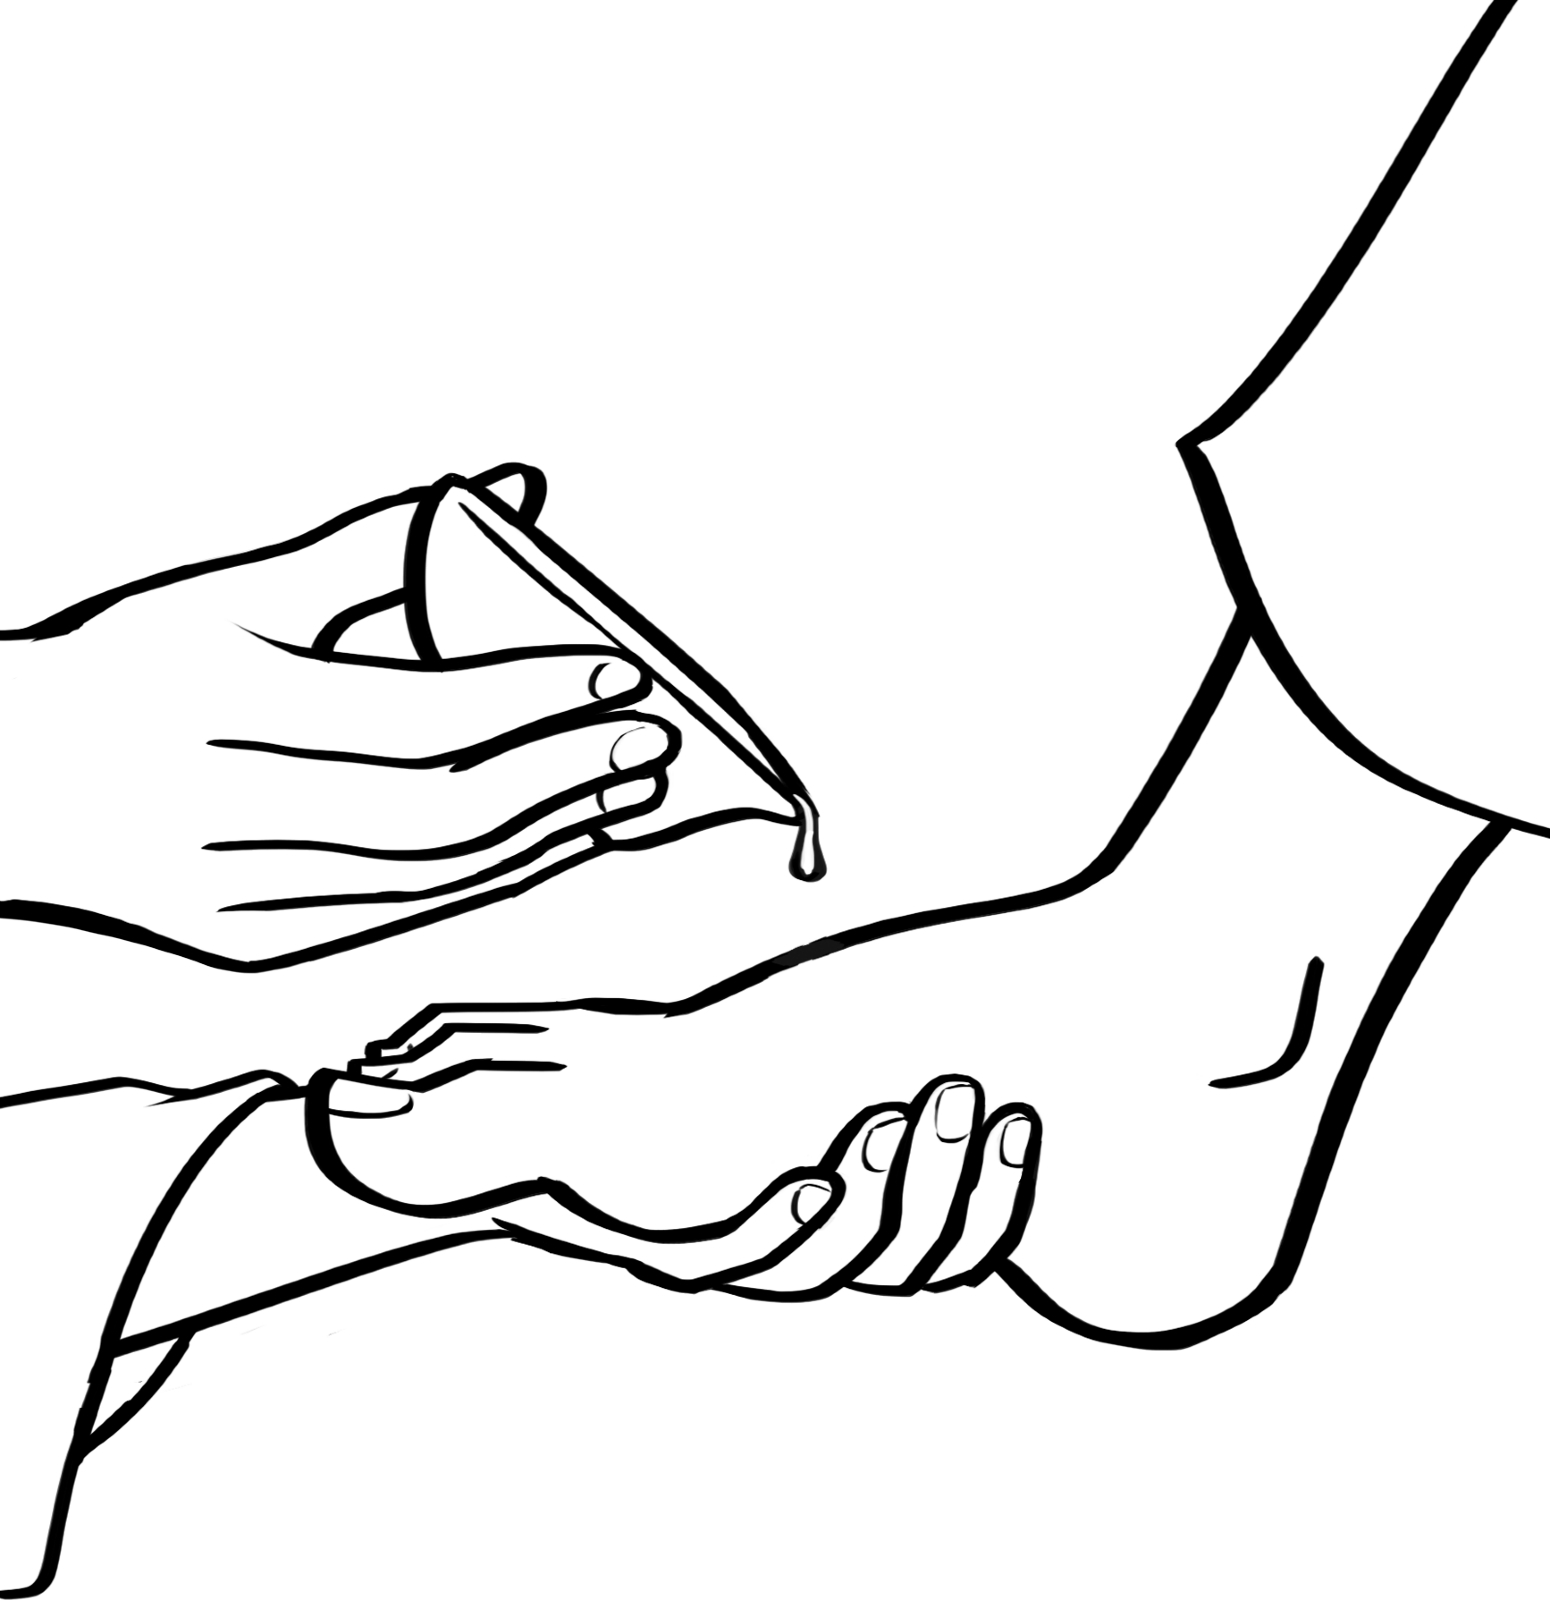 1550x1600 Dinosaur Feet Coloring Pages Feet Coloring Pages World